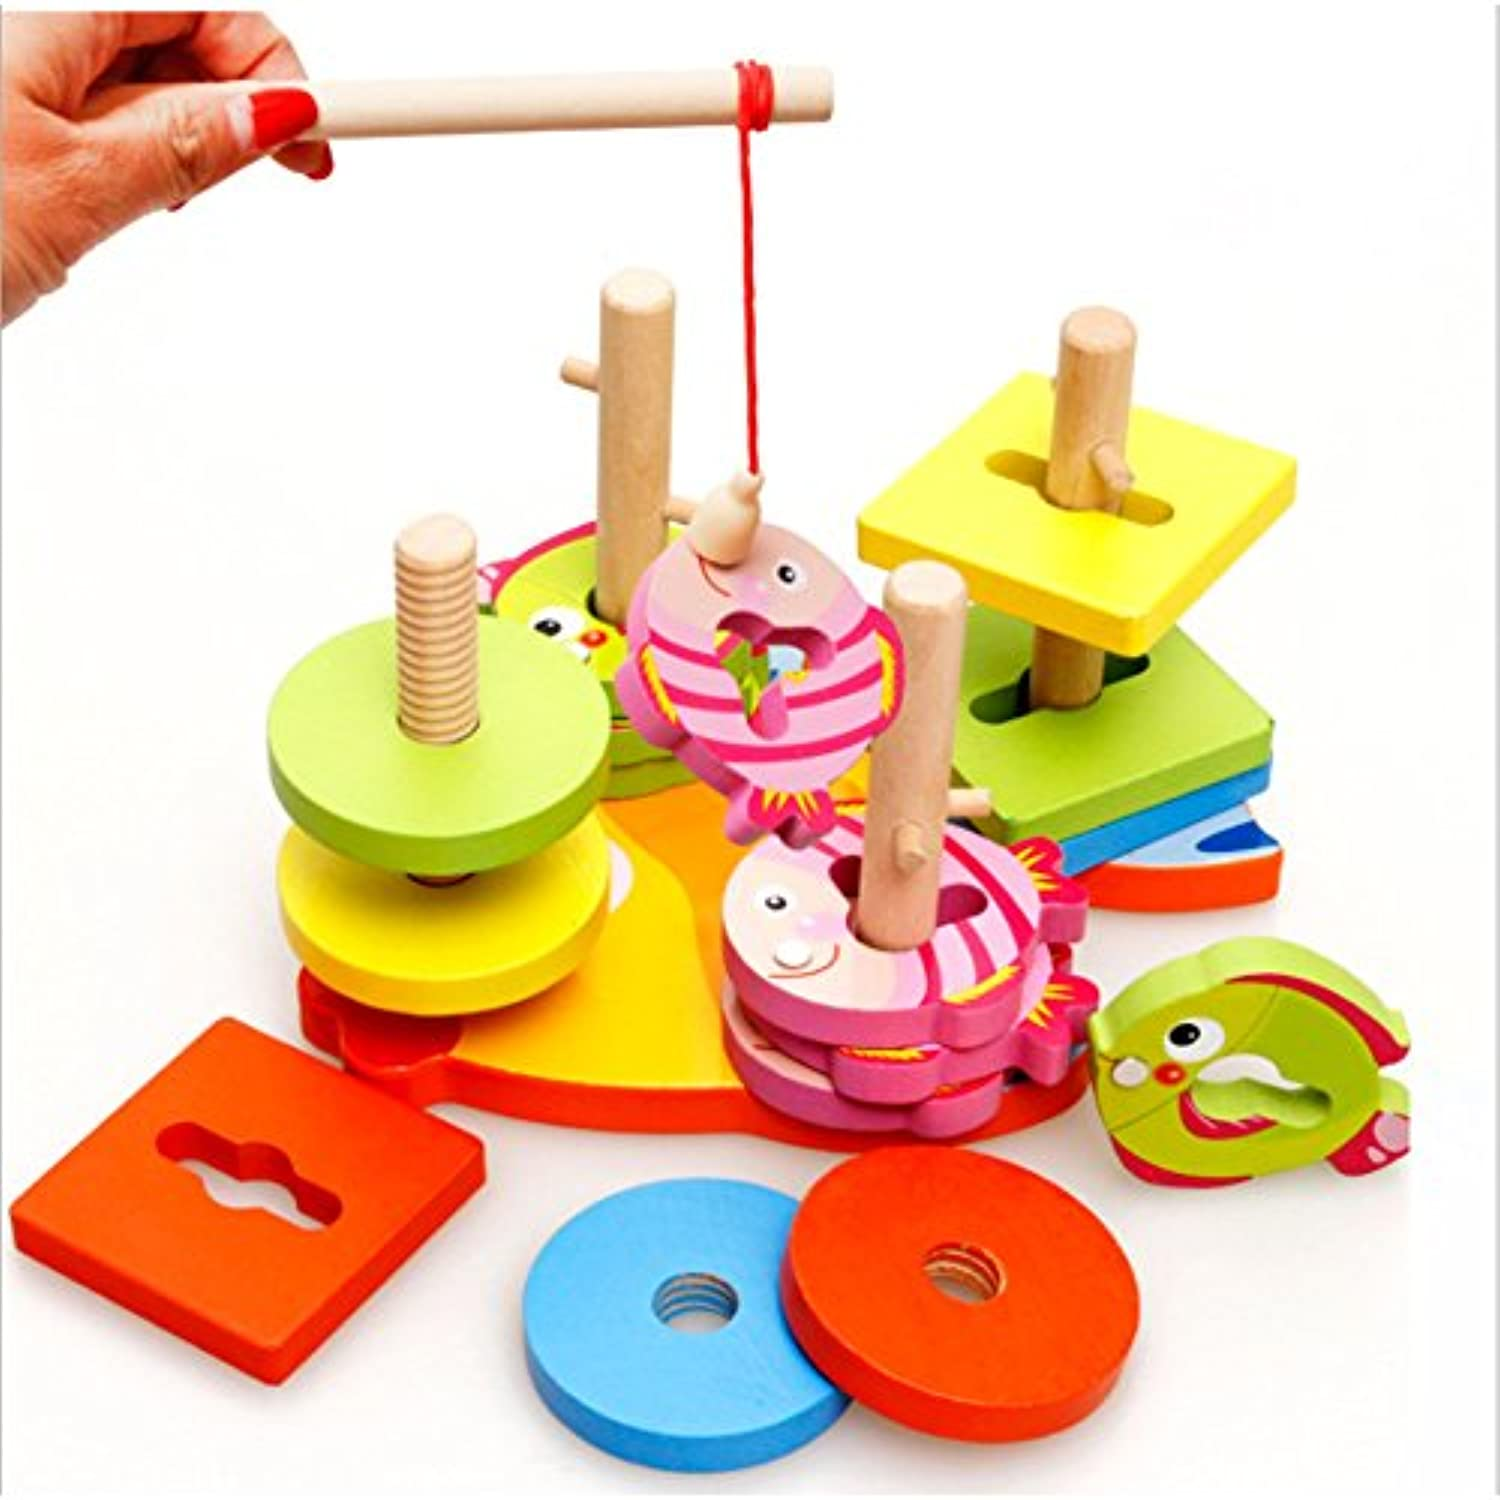 2 in 1磁気釣りゲームShape Sorting Peggedパズル木製教育玩具ギフトfor Kids Toddlers